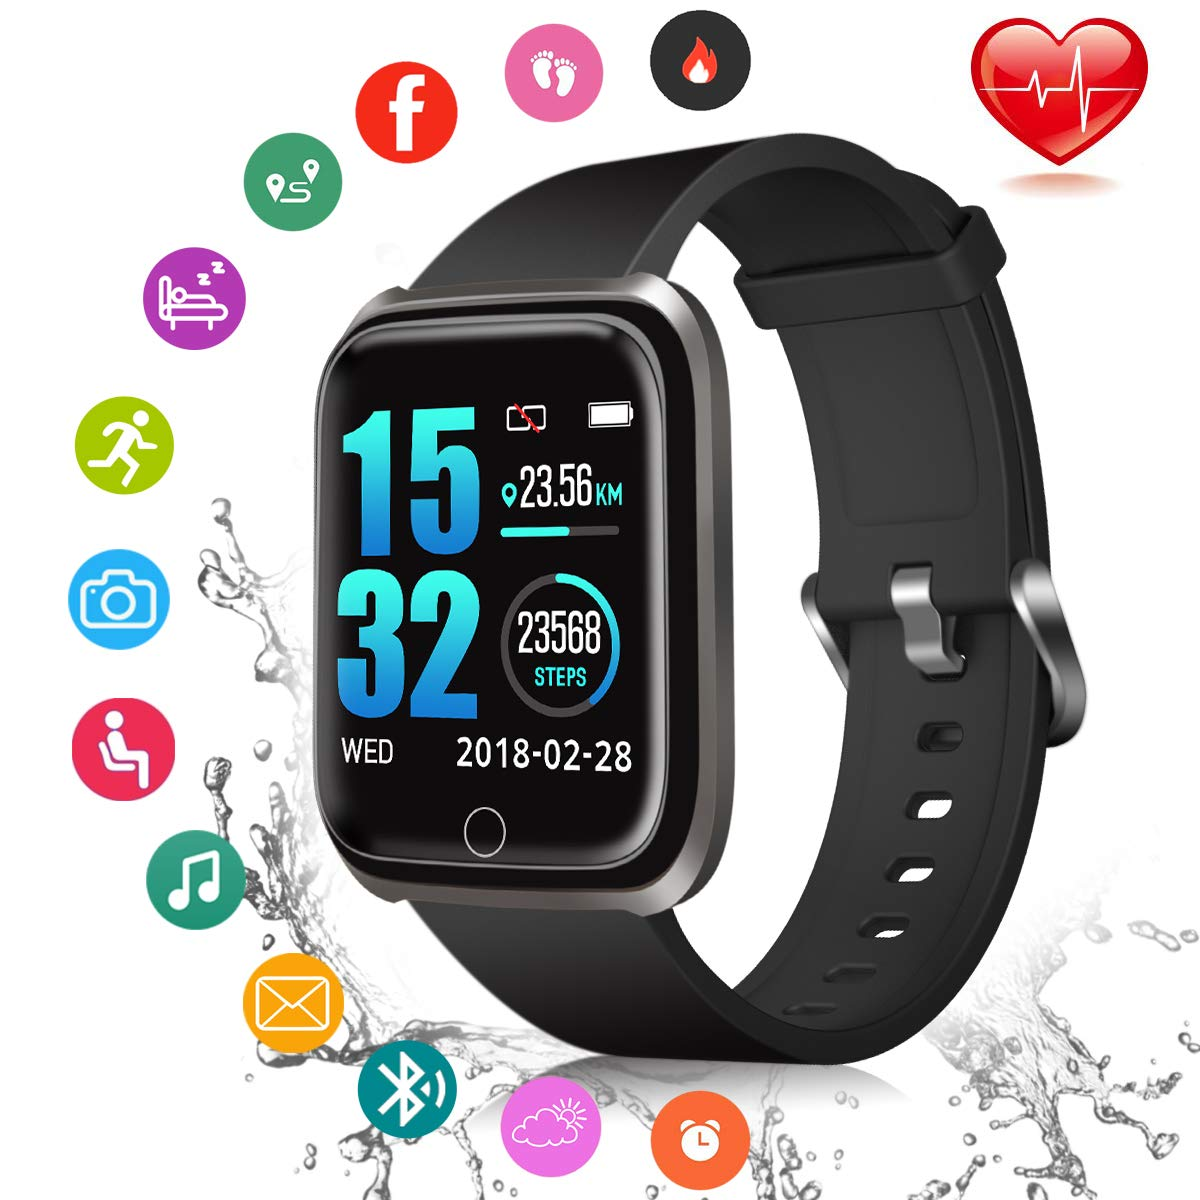 Fitness Tracker, Smart Watch Fitness Watch Activity Tracker with Sleep Monitor Heart Rate Measure IP67 Waterproof Sports Watch, Smartwatch for Android iOS Men Women Kids by iFuntecky